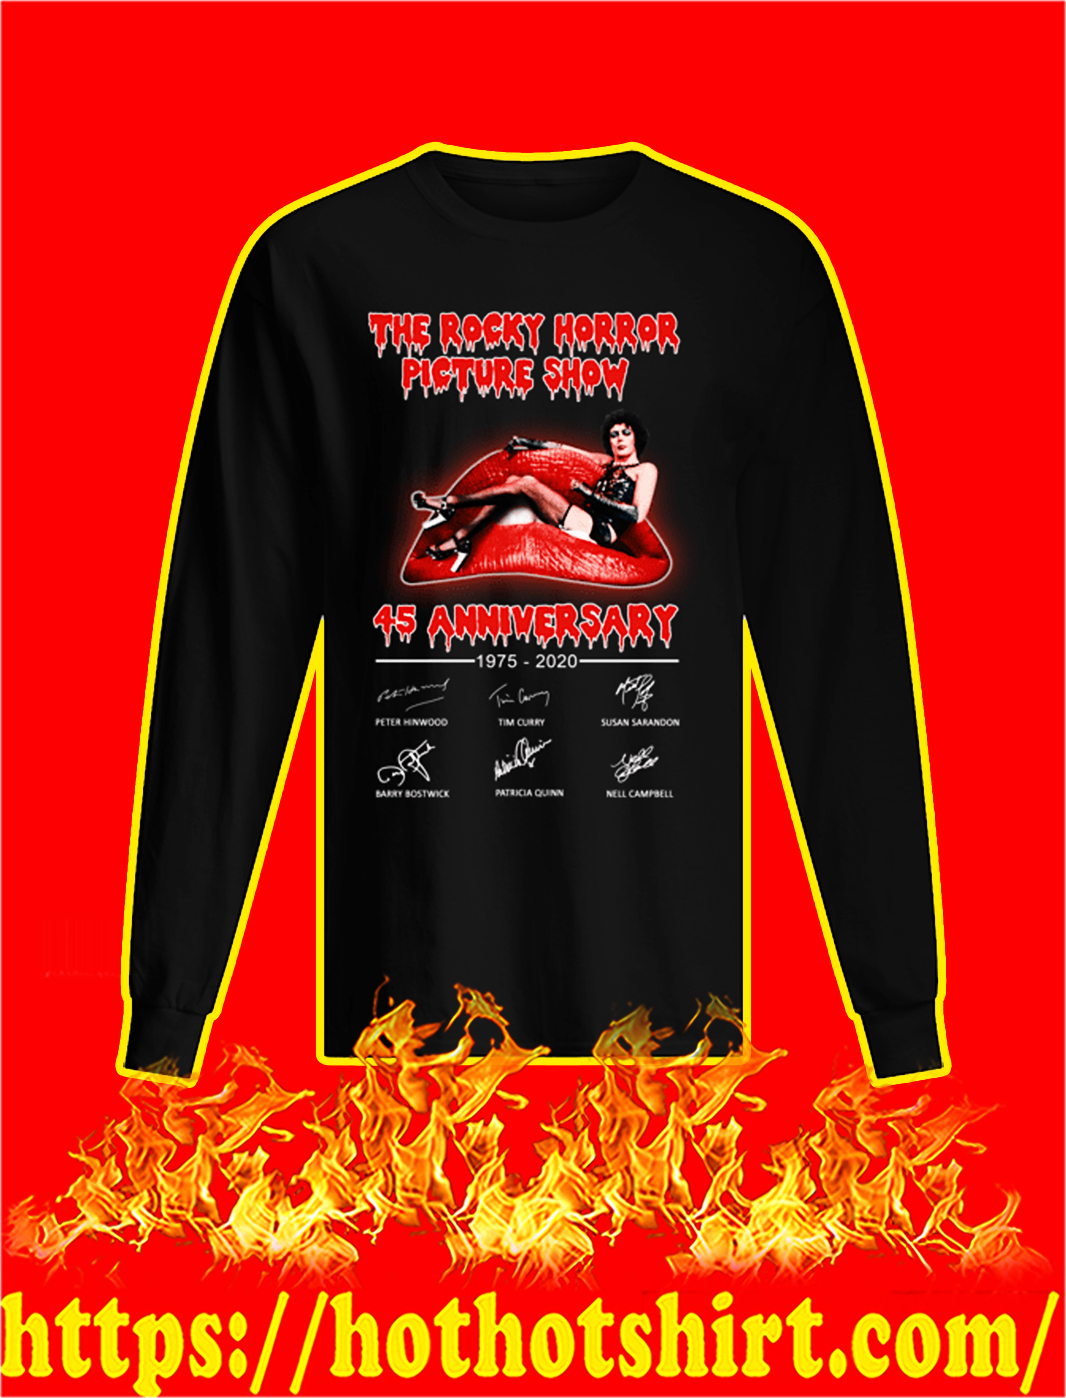 The Rocky Horror Picture Show 45th Anniversary longsleeve tee